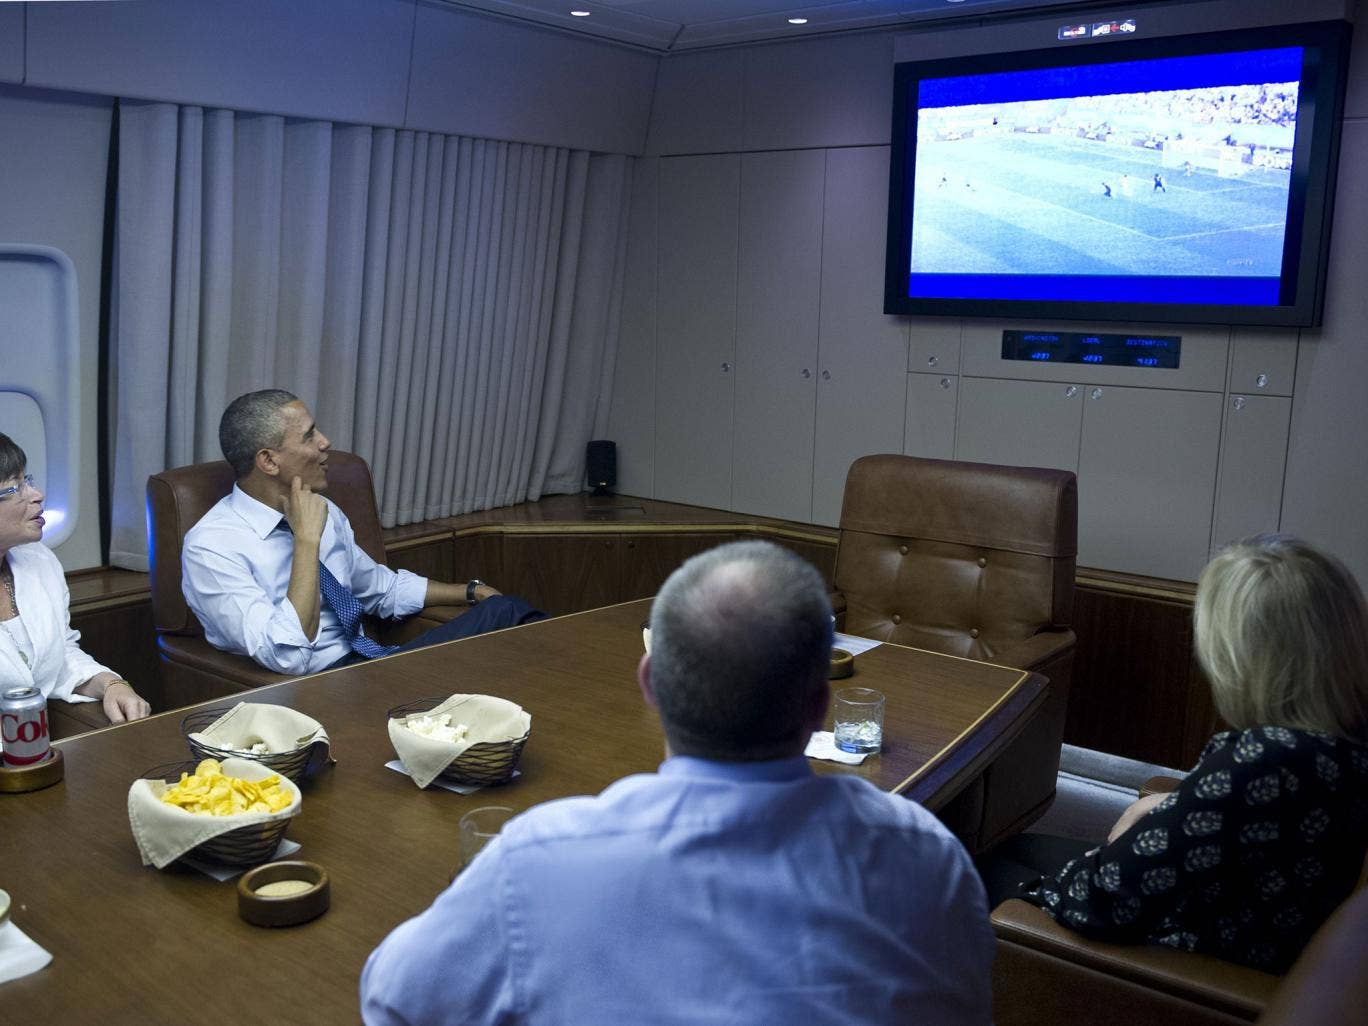 US President Barack Obama and Senior Advisor Valerie Jarrett (L) watch the 2014 World Cup match between the US and Germany while en route to Minnepolis